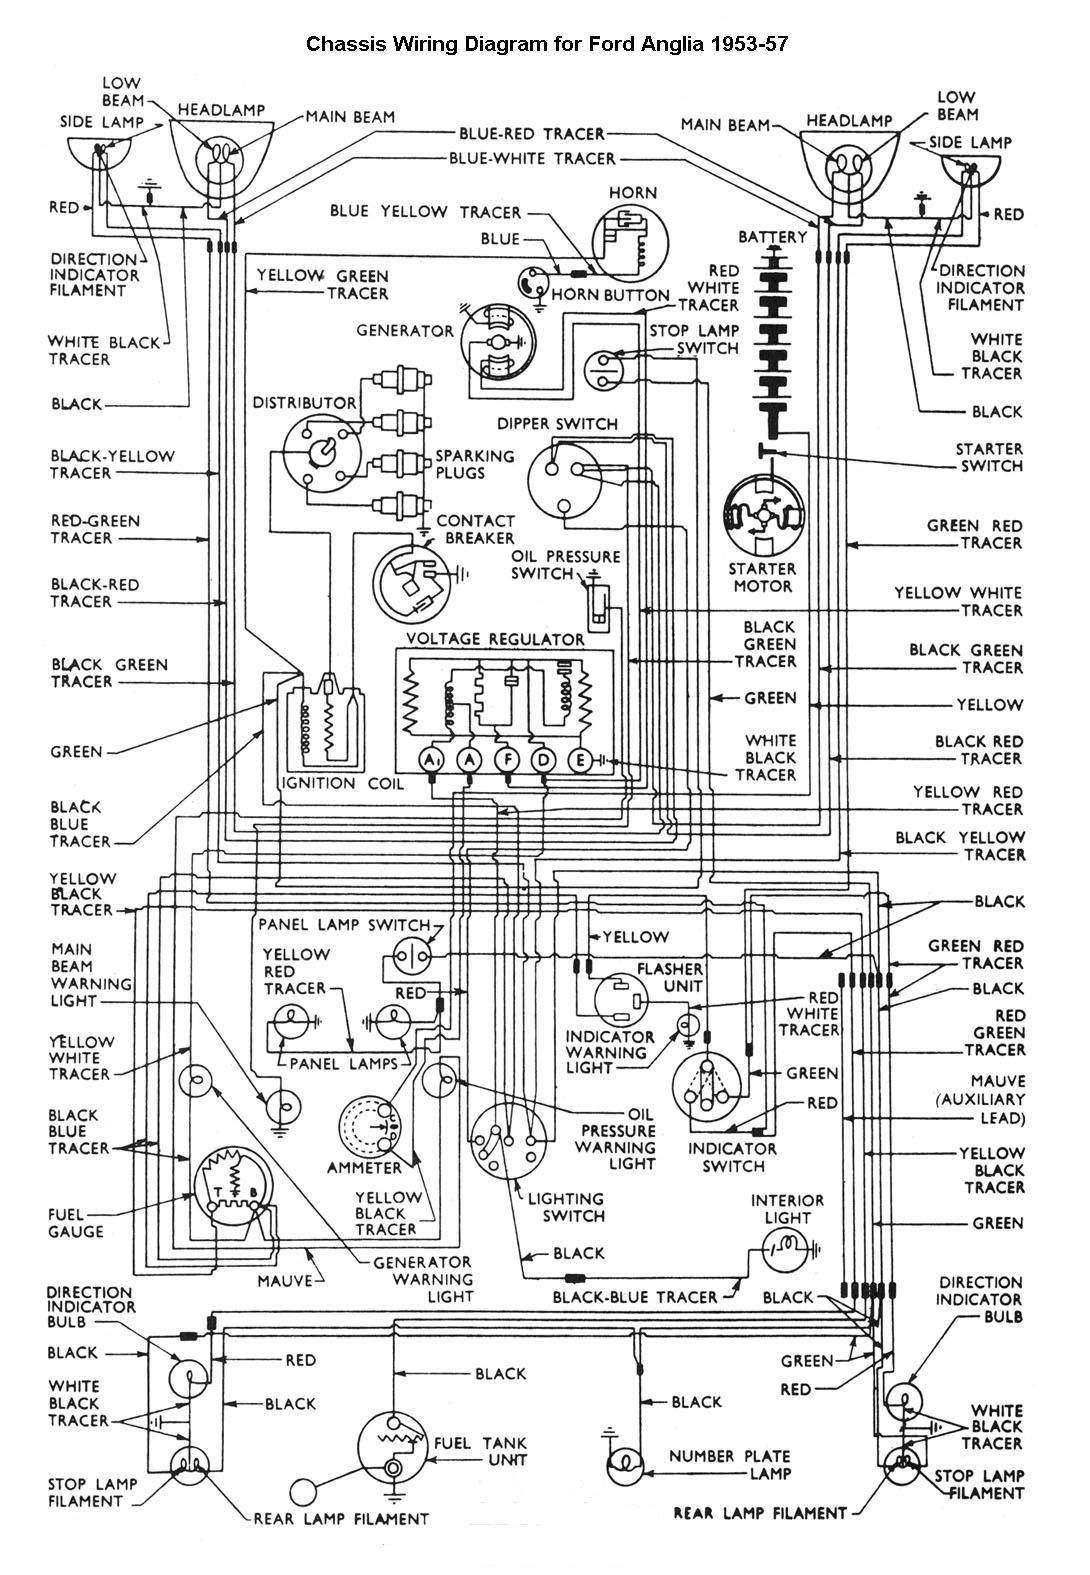 wrg 7679] wiring diagrams cars Snake Skeleton Diagram